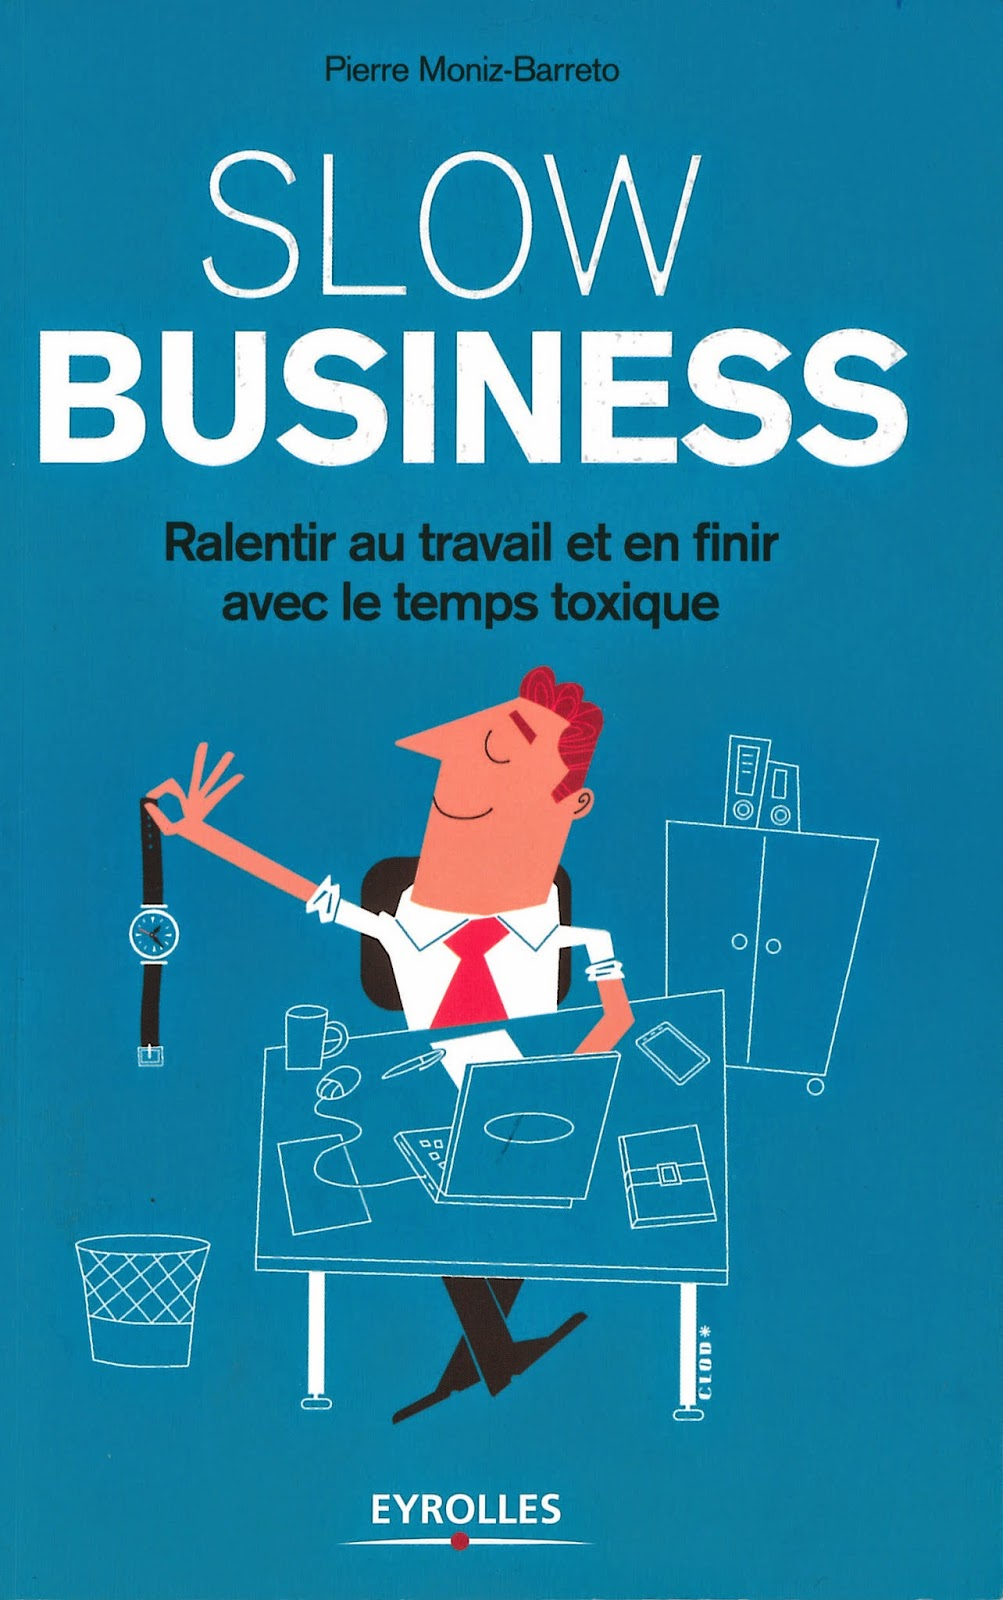 Livre Slow business de Pierre Moniz-Barreto